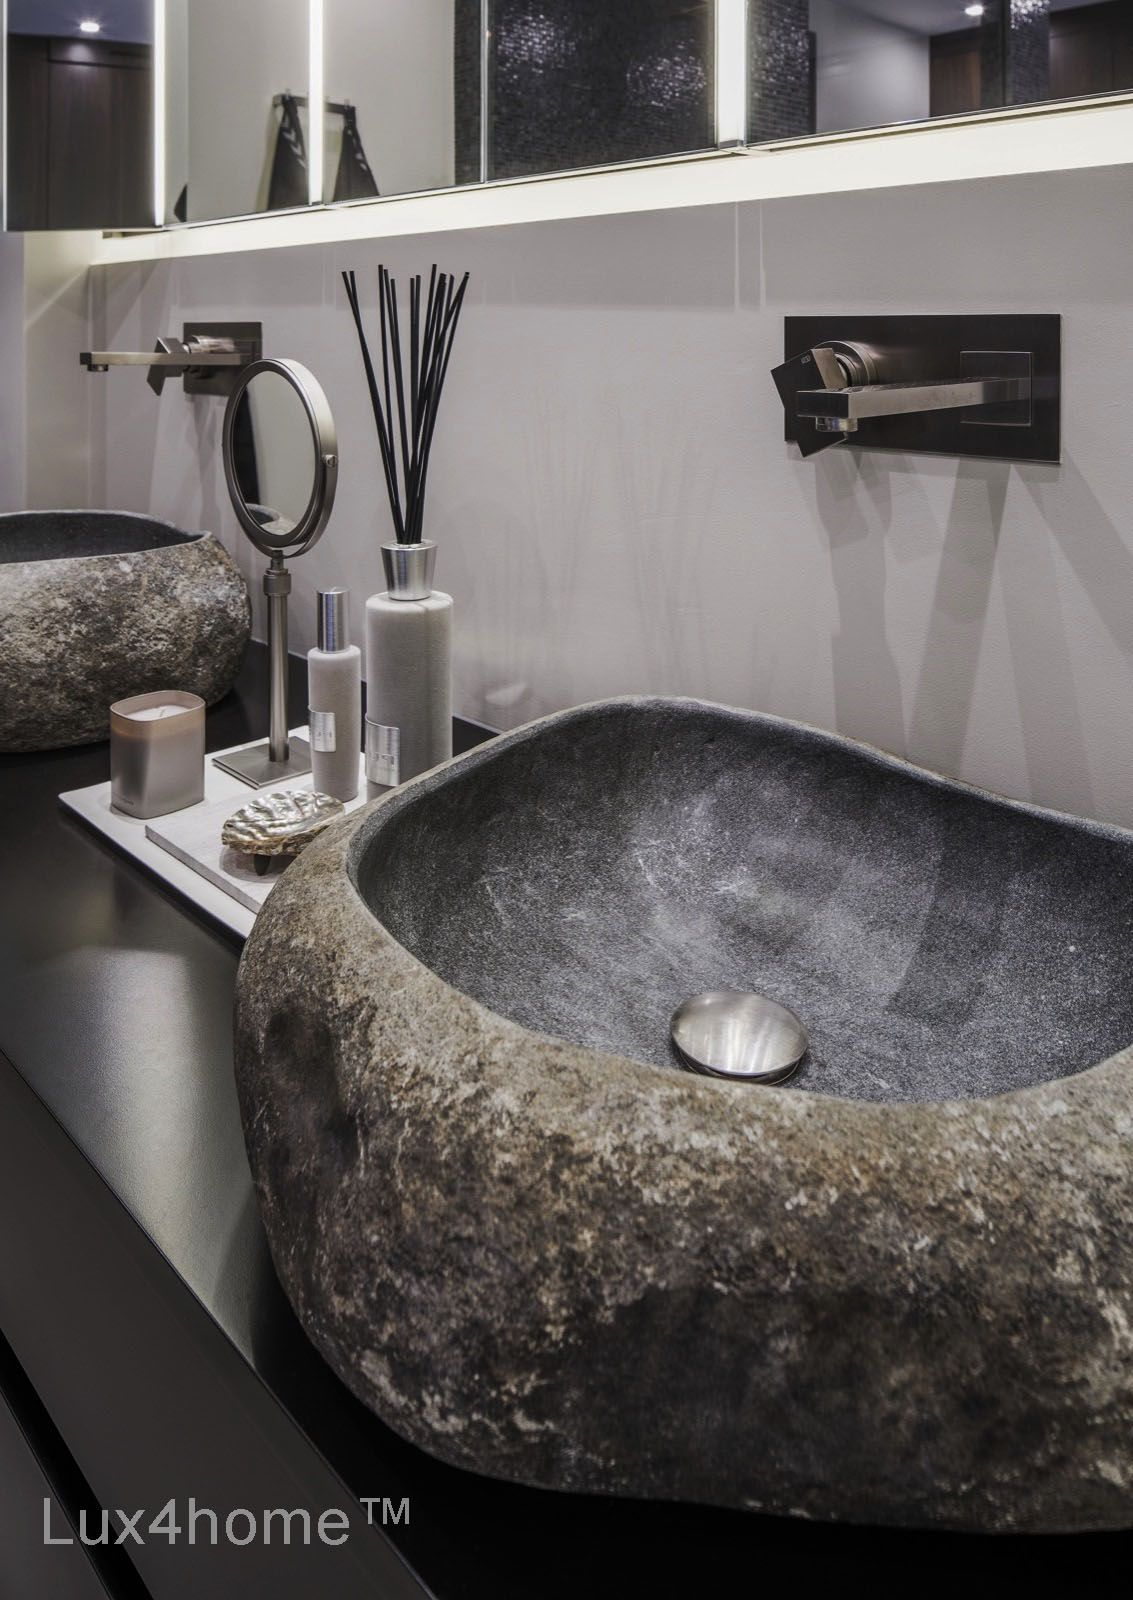 Totally Natural Stone Sinks Collection   River Stone. Sizes From 35 Cm To  120 Cm. Natural Stone Wash Basin Vesselu2014stone Sinks Handmade Ind Indonesia.